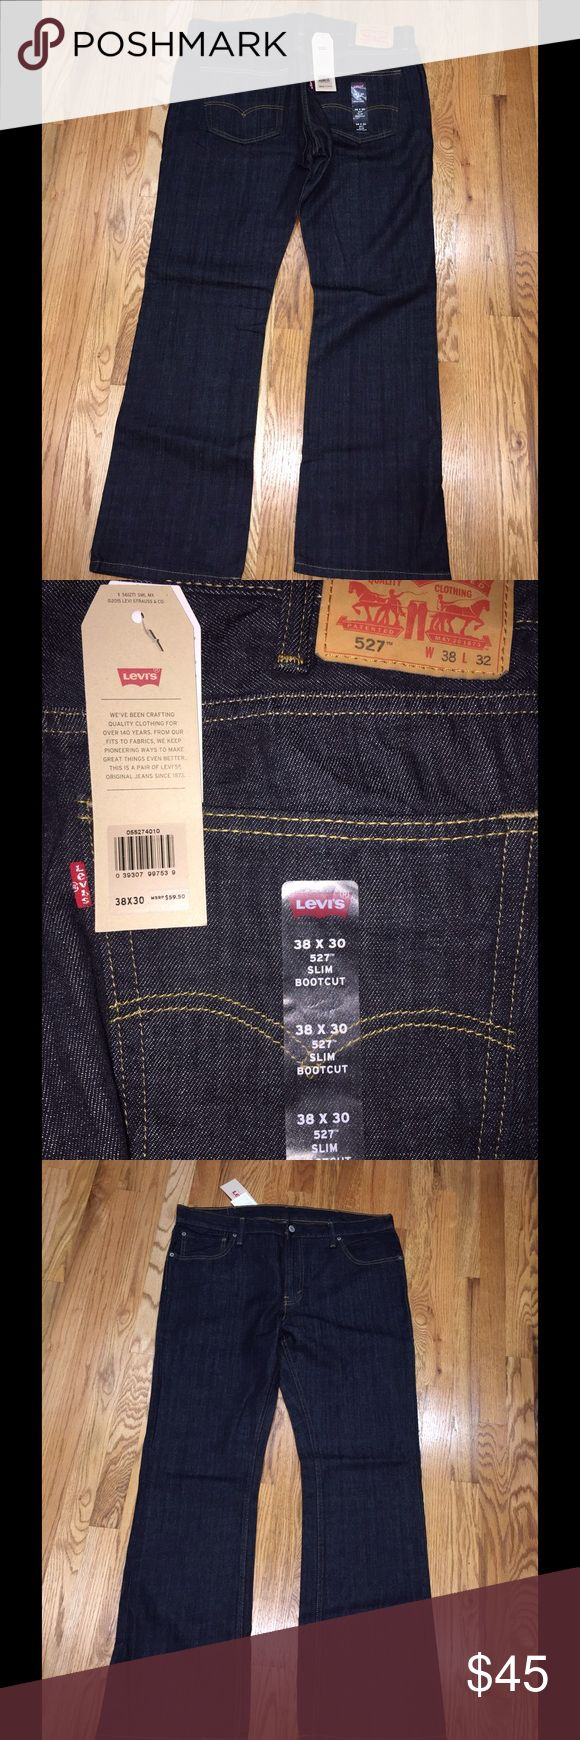 Levi 527 men's jeans New with tags Levi 527 men's jeans. They are size 38x32. Levi's Jeans Bootcut